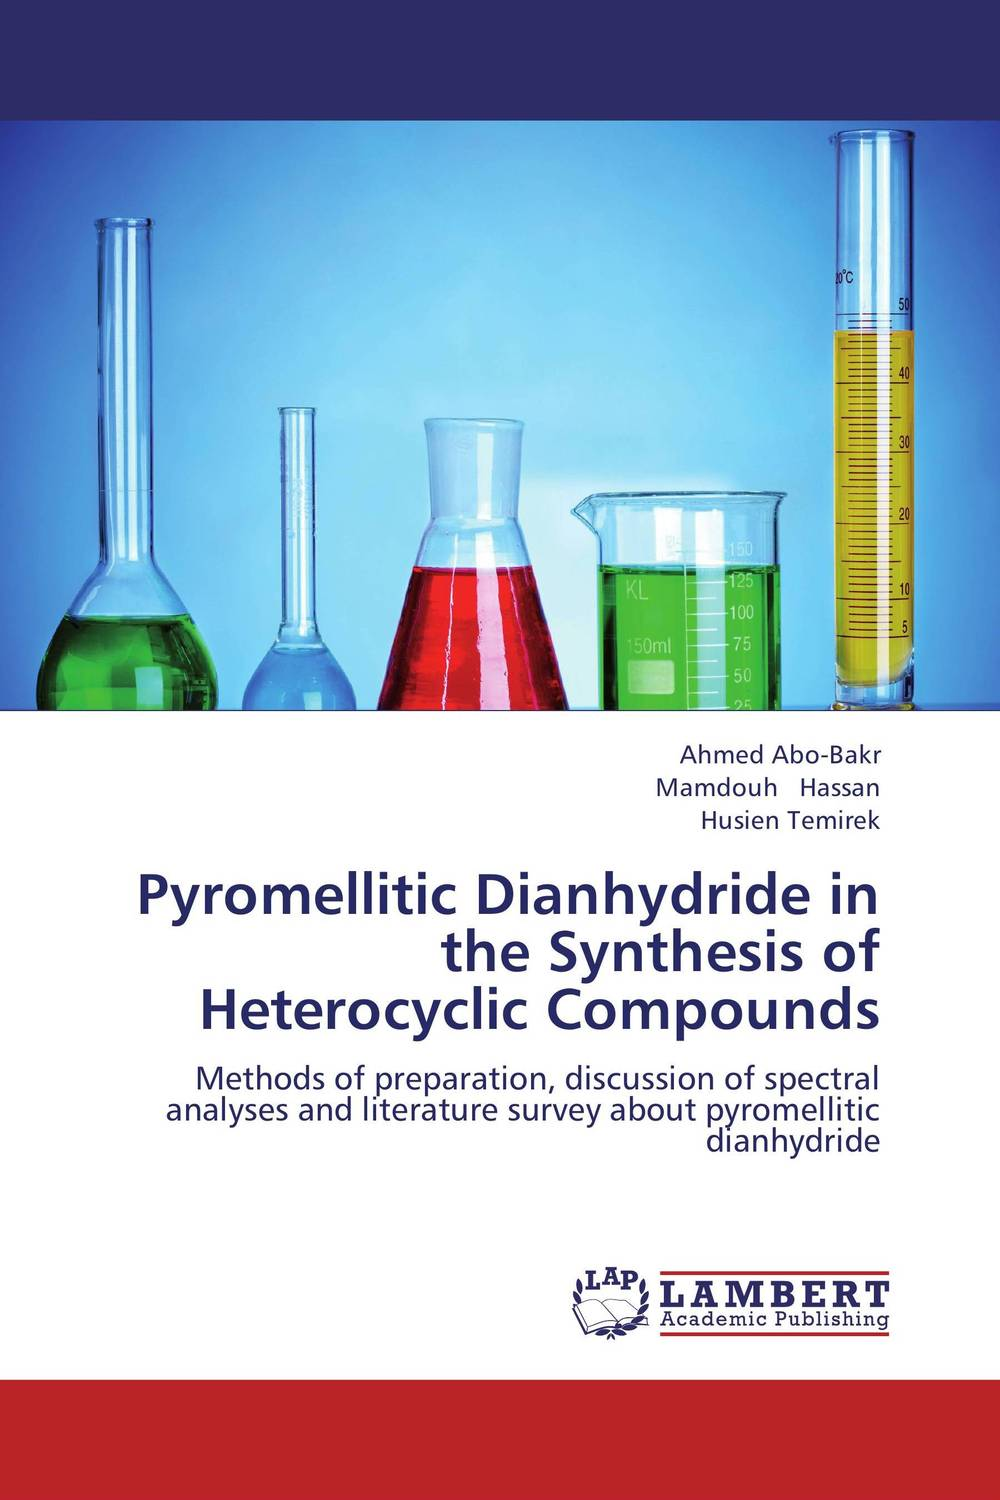 Pyromellitic Dianhydride in the Synthesis of Heterocyclic Compounds nagat abady adel el gendy and mohamed mokhtar synthesis of certain indole 2 carboxylate derivatives